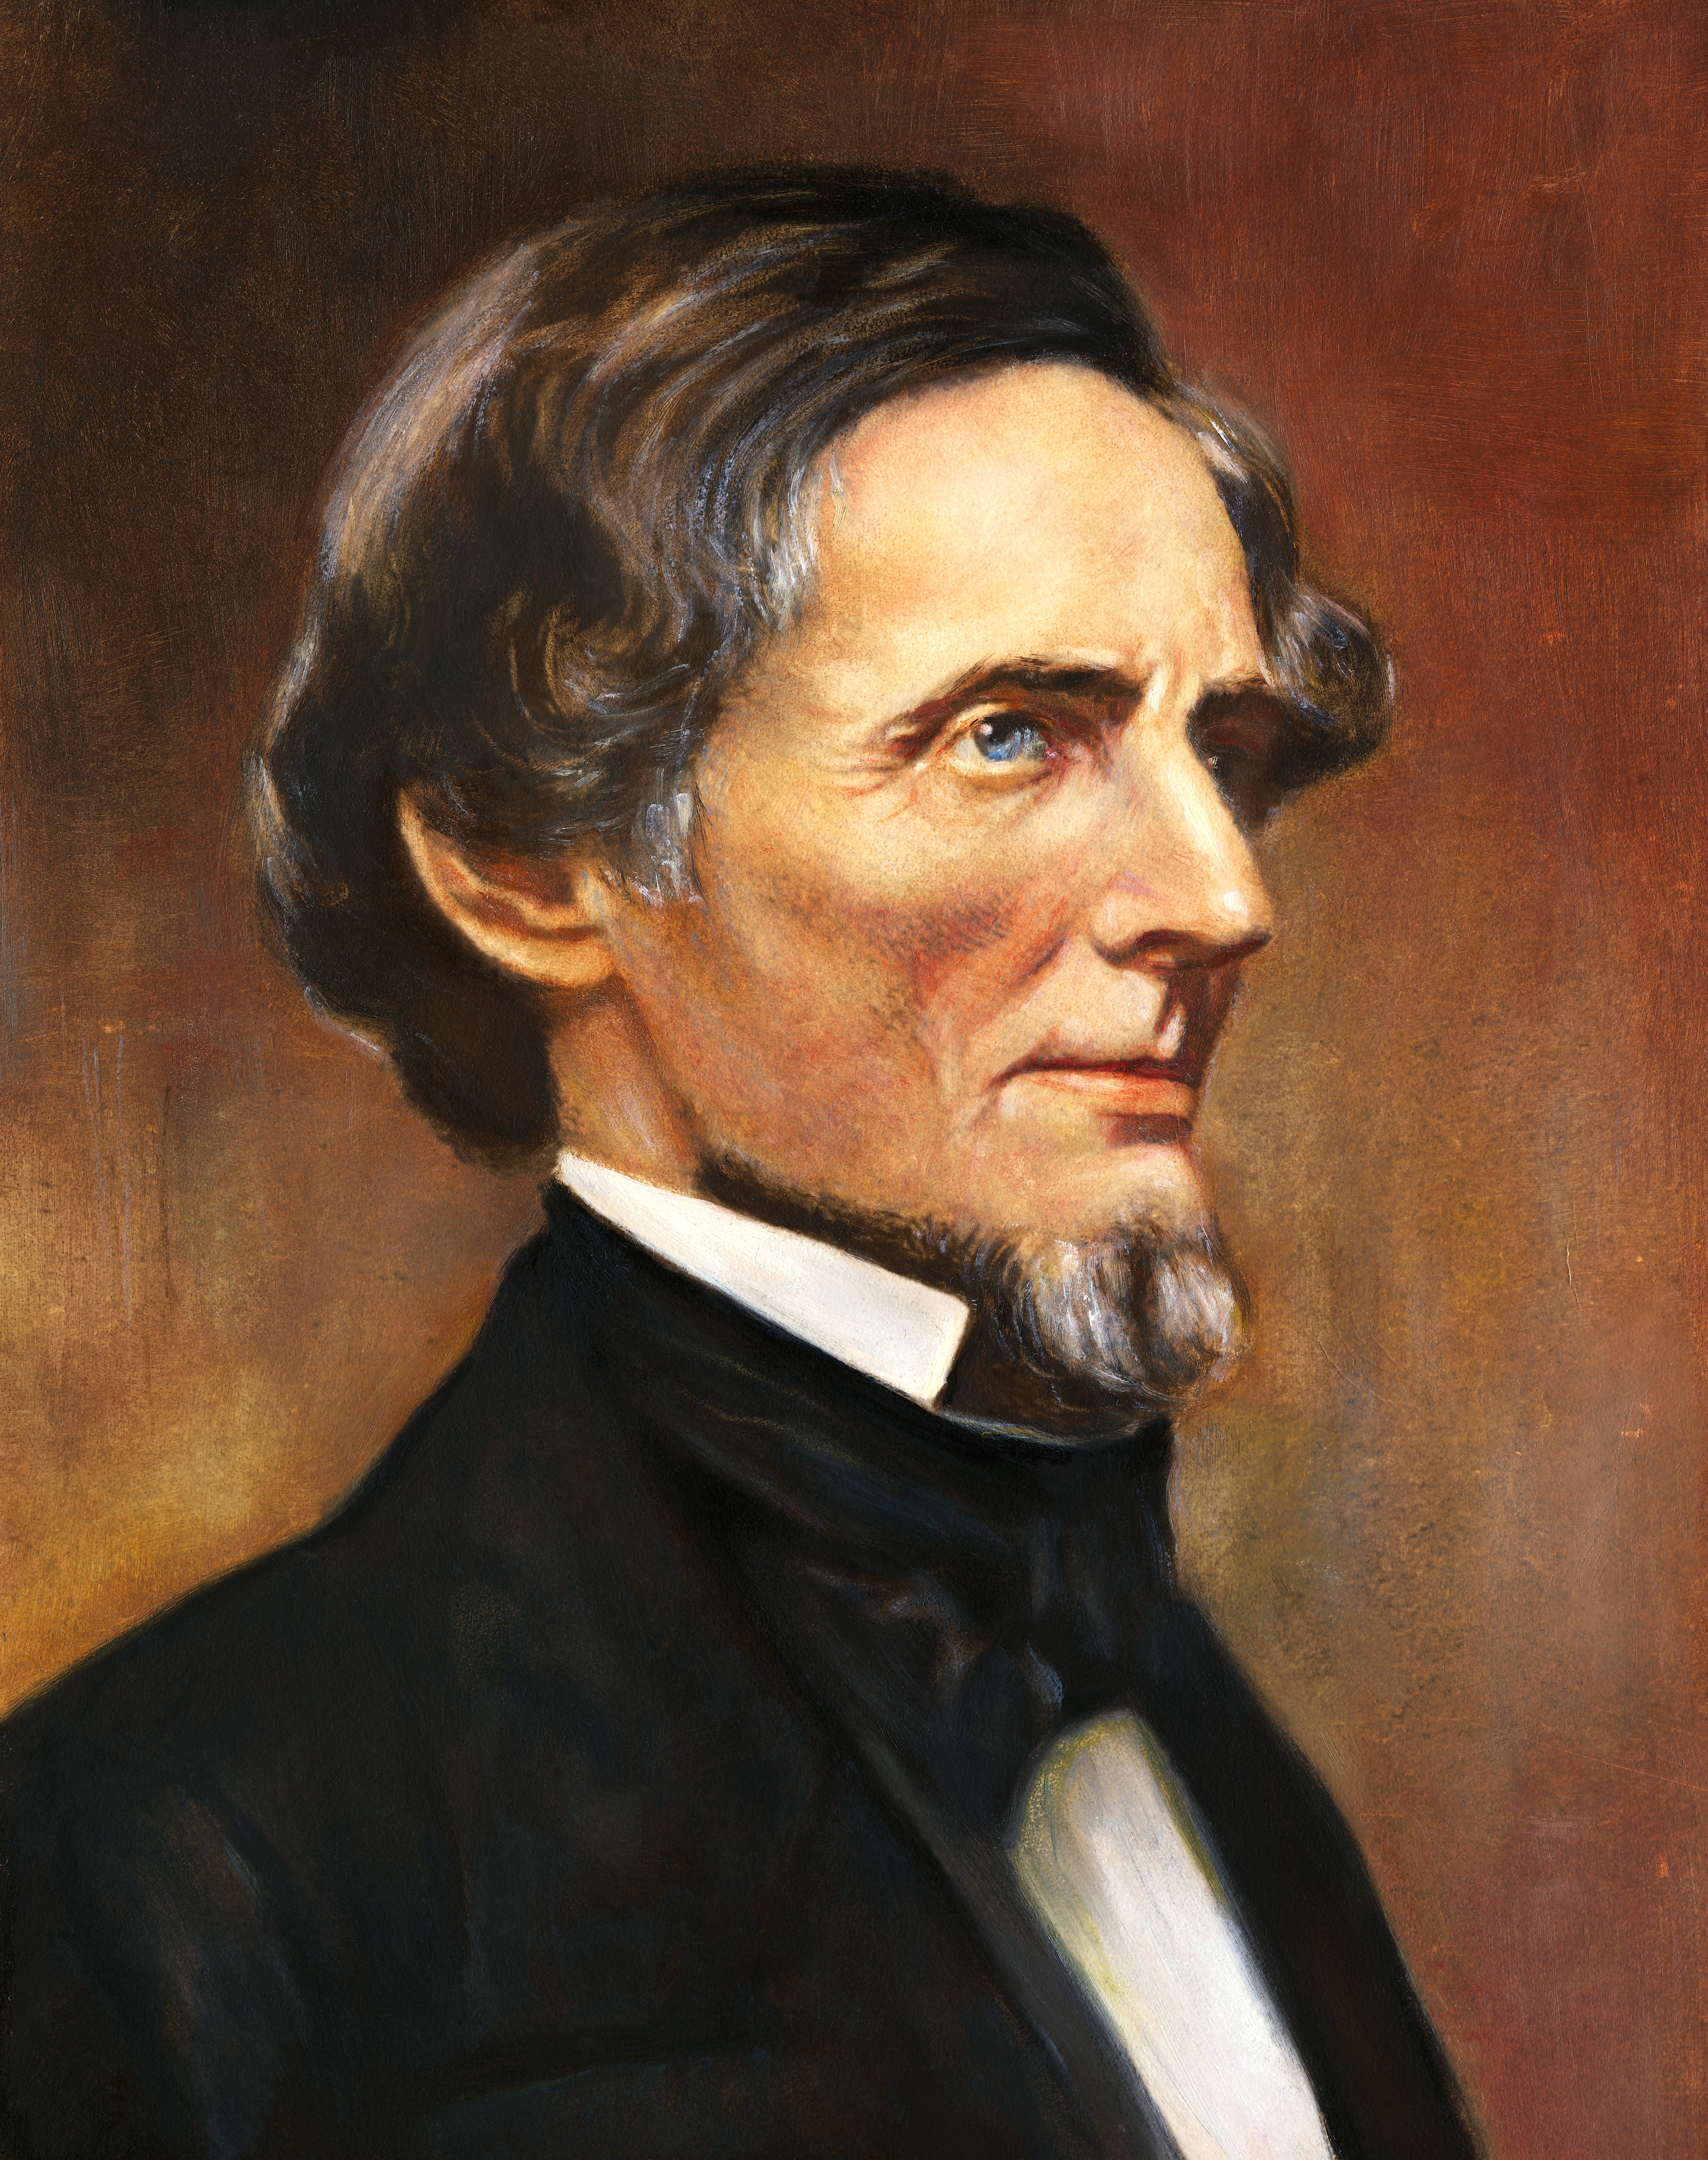 jefferson davis precidency of the confederate states of america The first president of the confederate states of america was stephen douglas jefferson davis abraham lincoln dred scott.